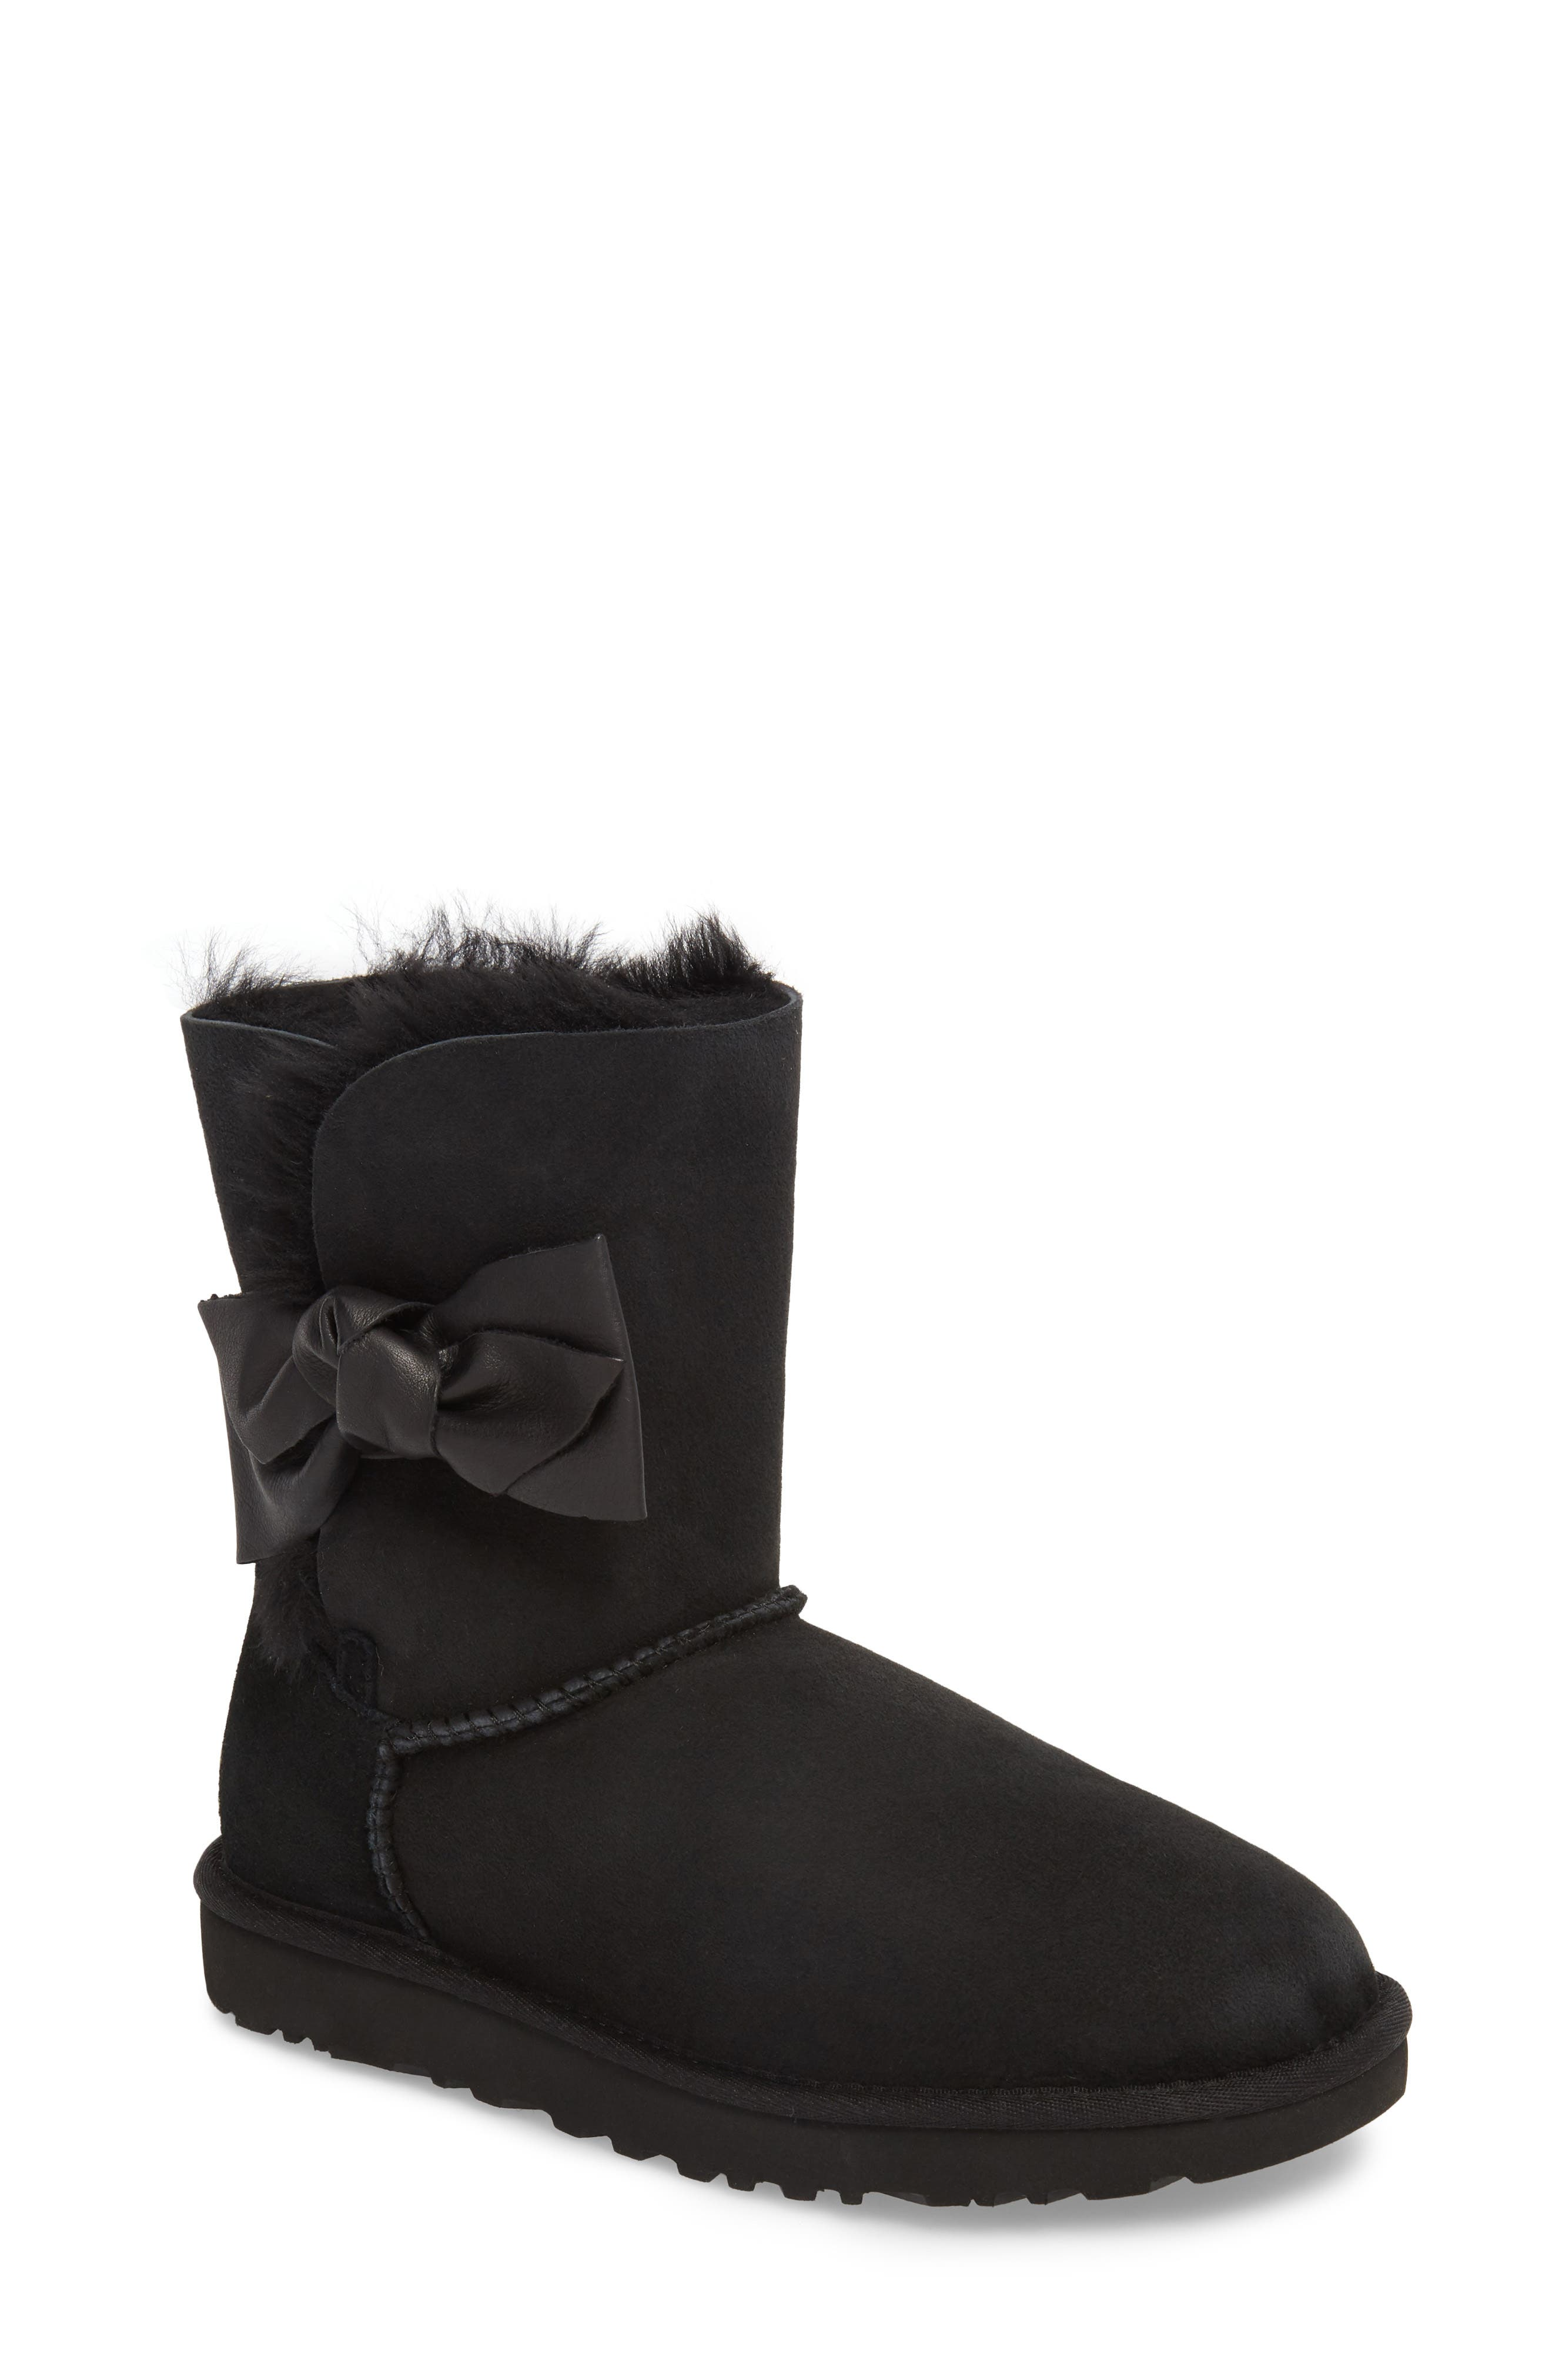 Image of UGG Daelynn Genuine Shearling Lined Boot